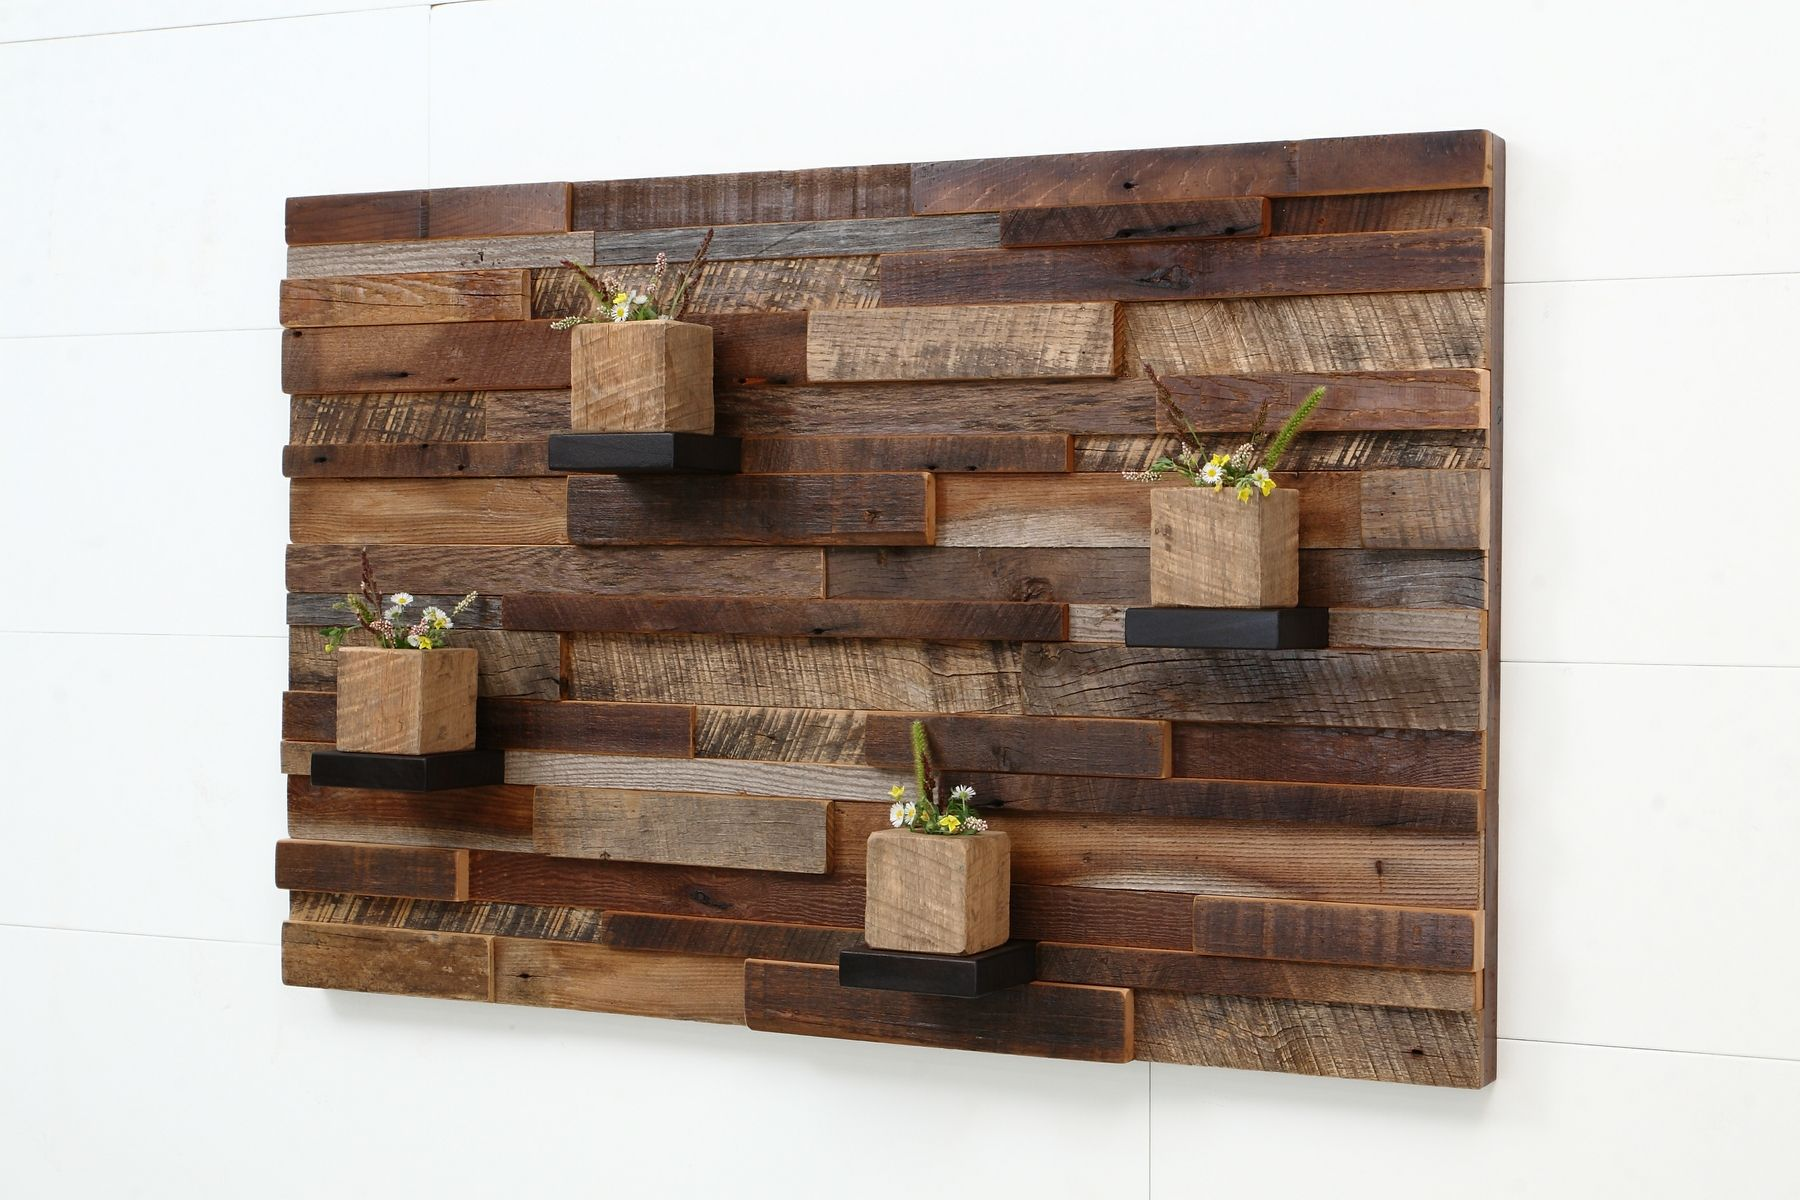 Barn Wood Wall Art hand crafted reclaimed wood wall art made of old barnwood.